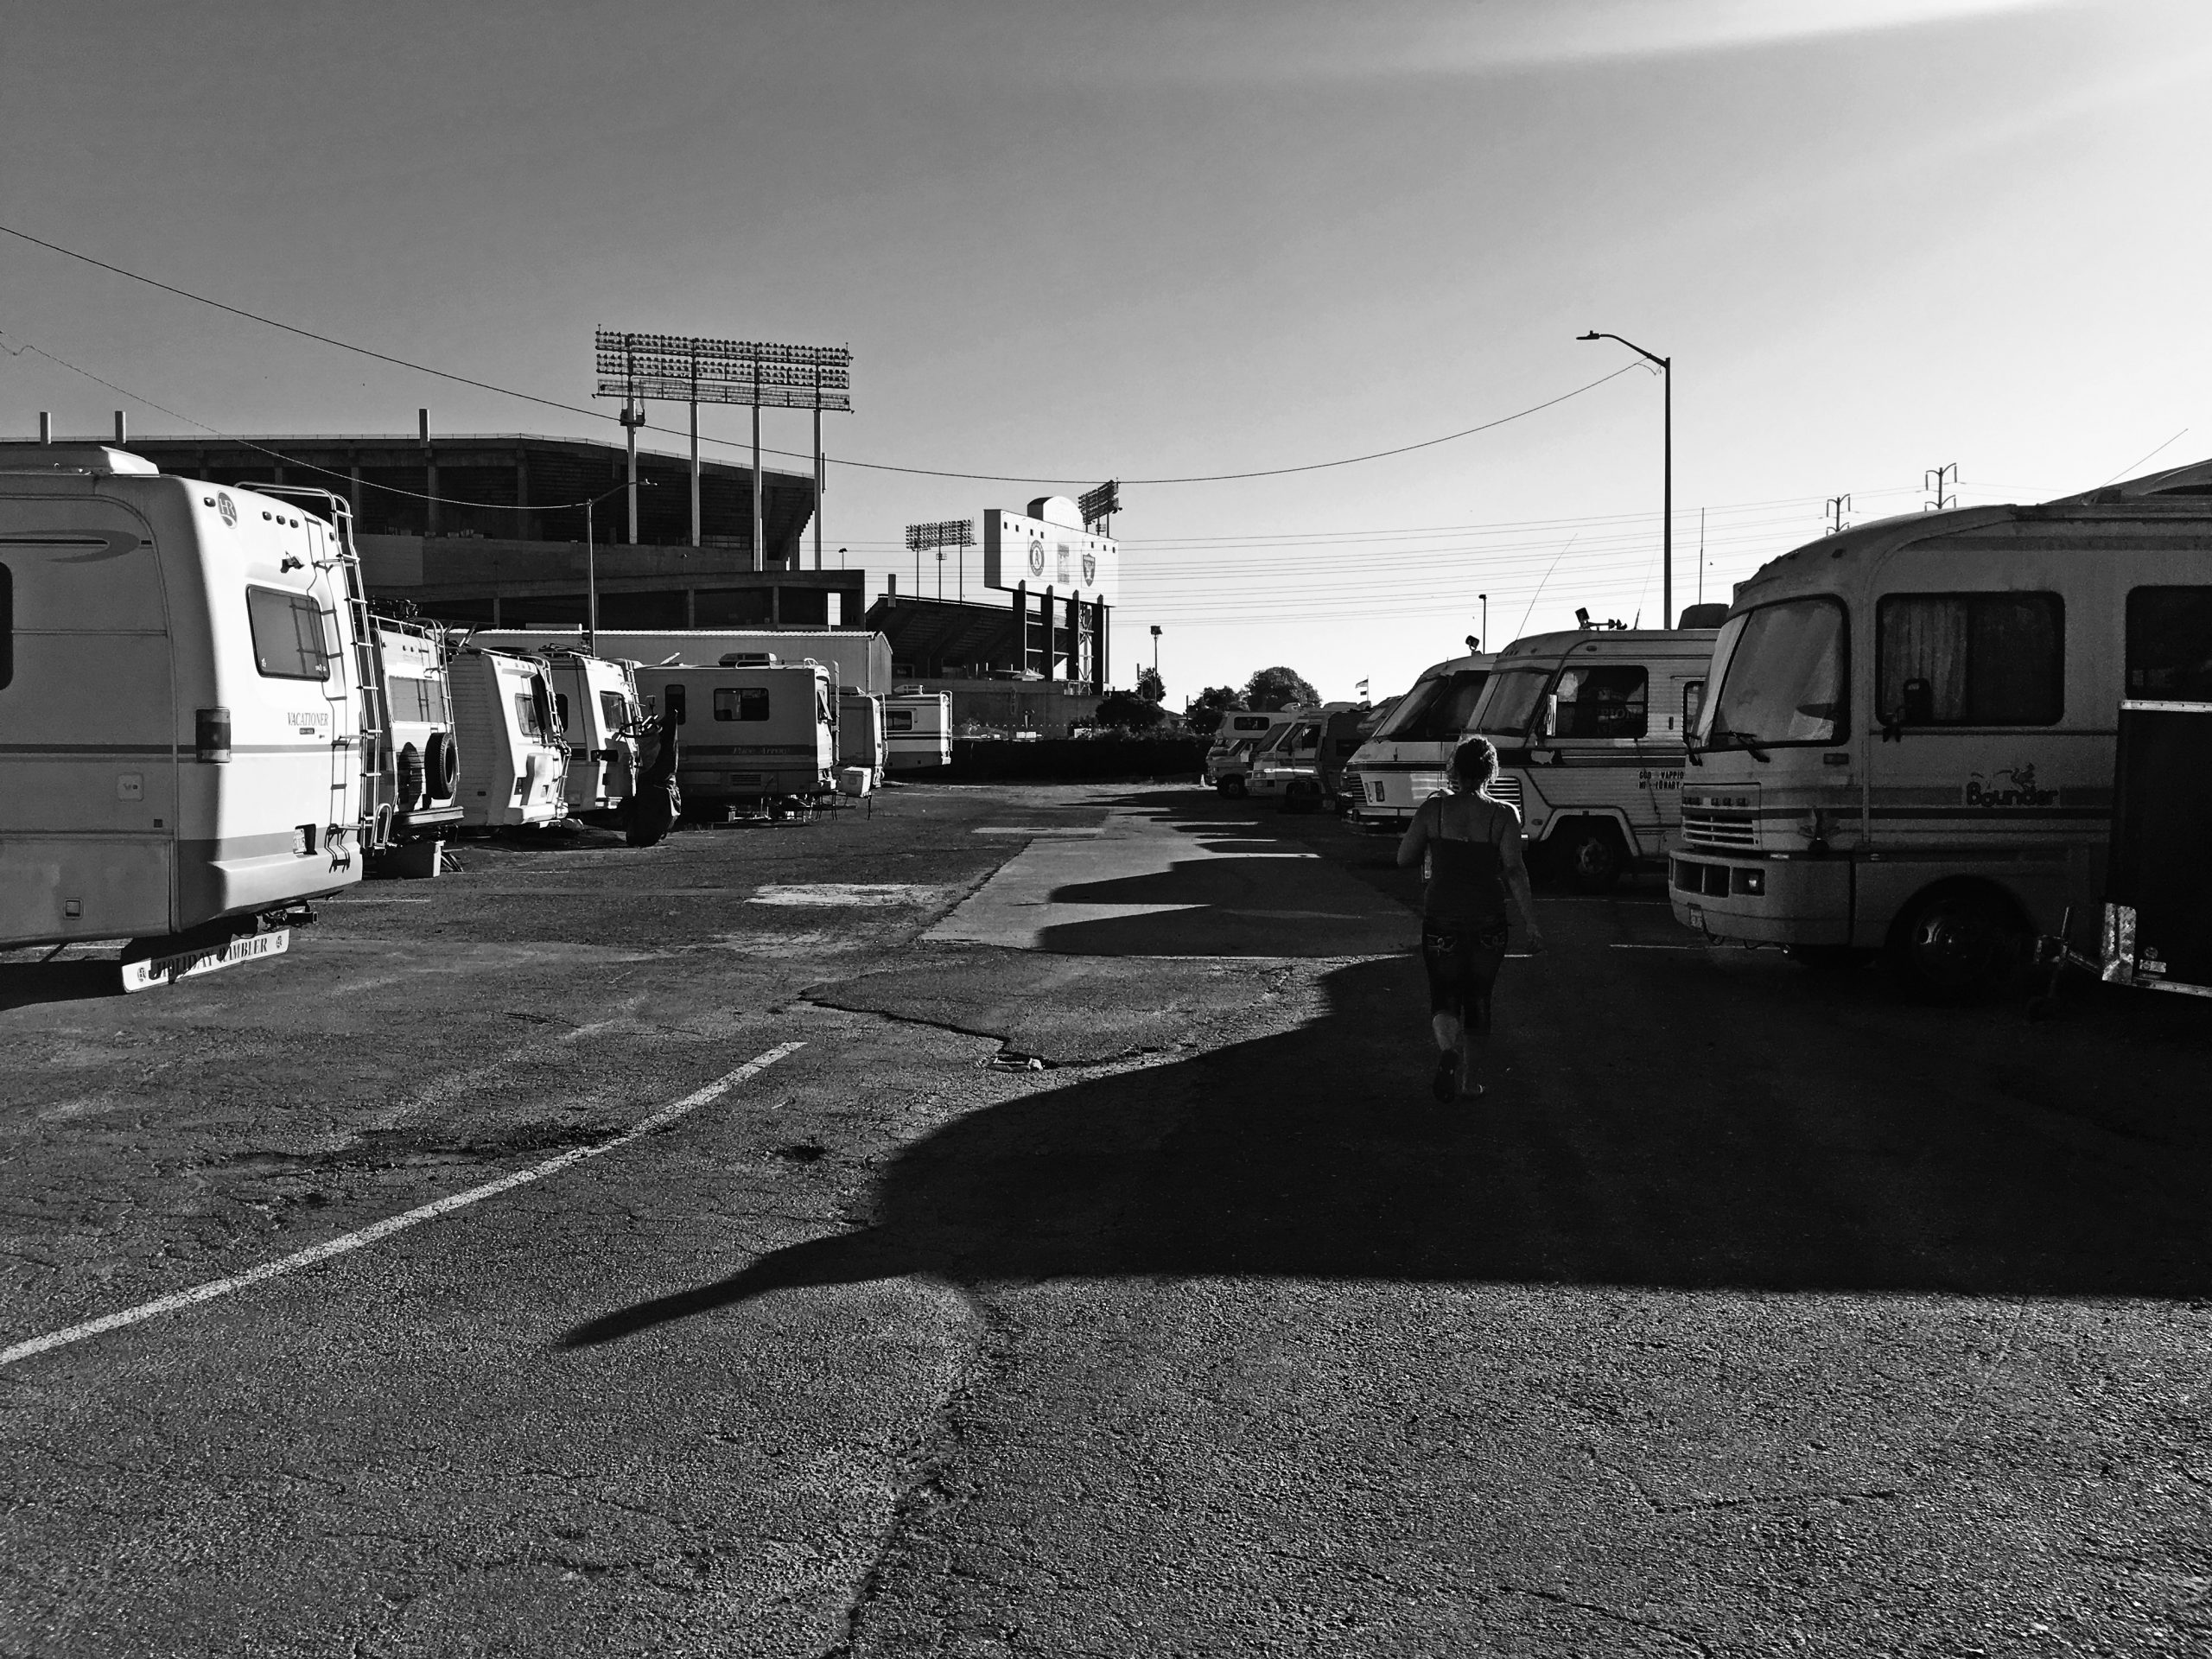 Black and white image of two rows of RVs. A solitary woman walks between them.